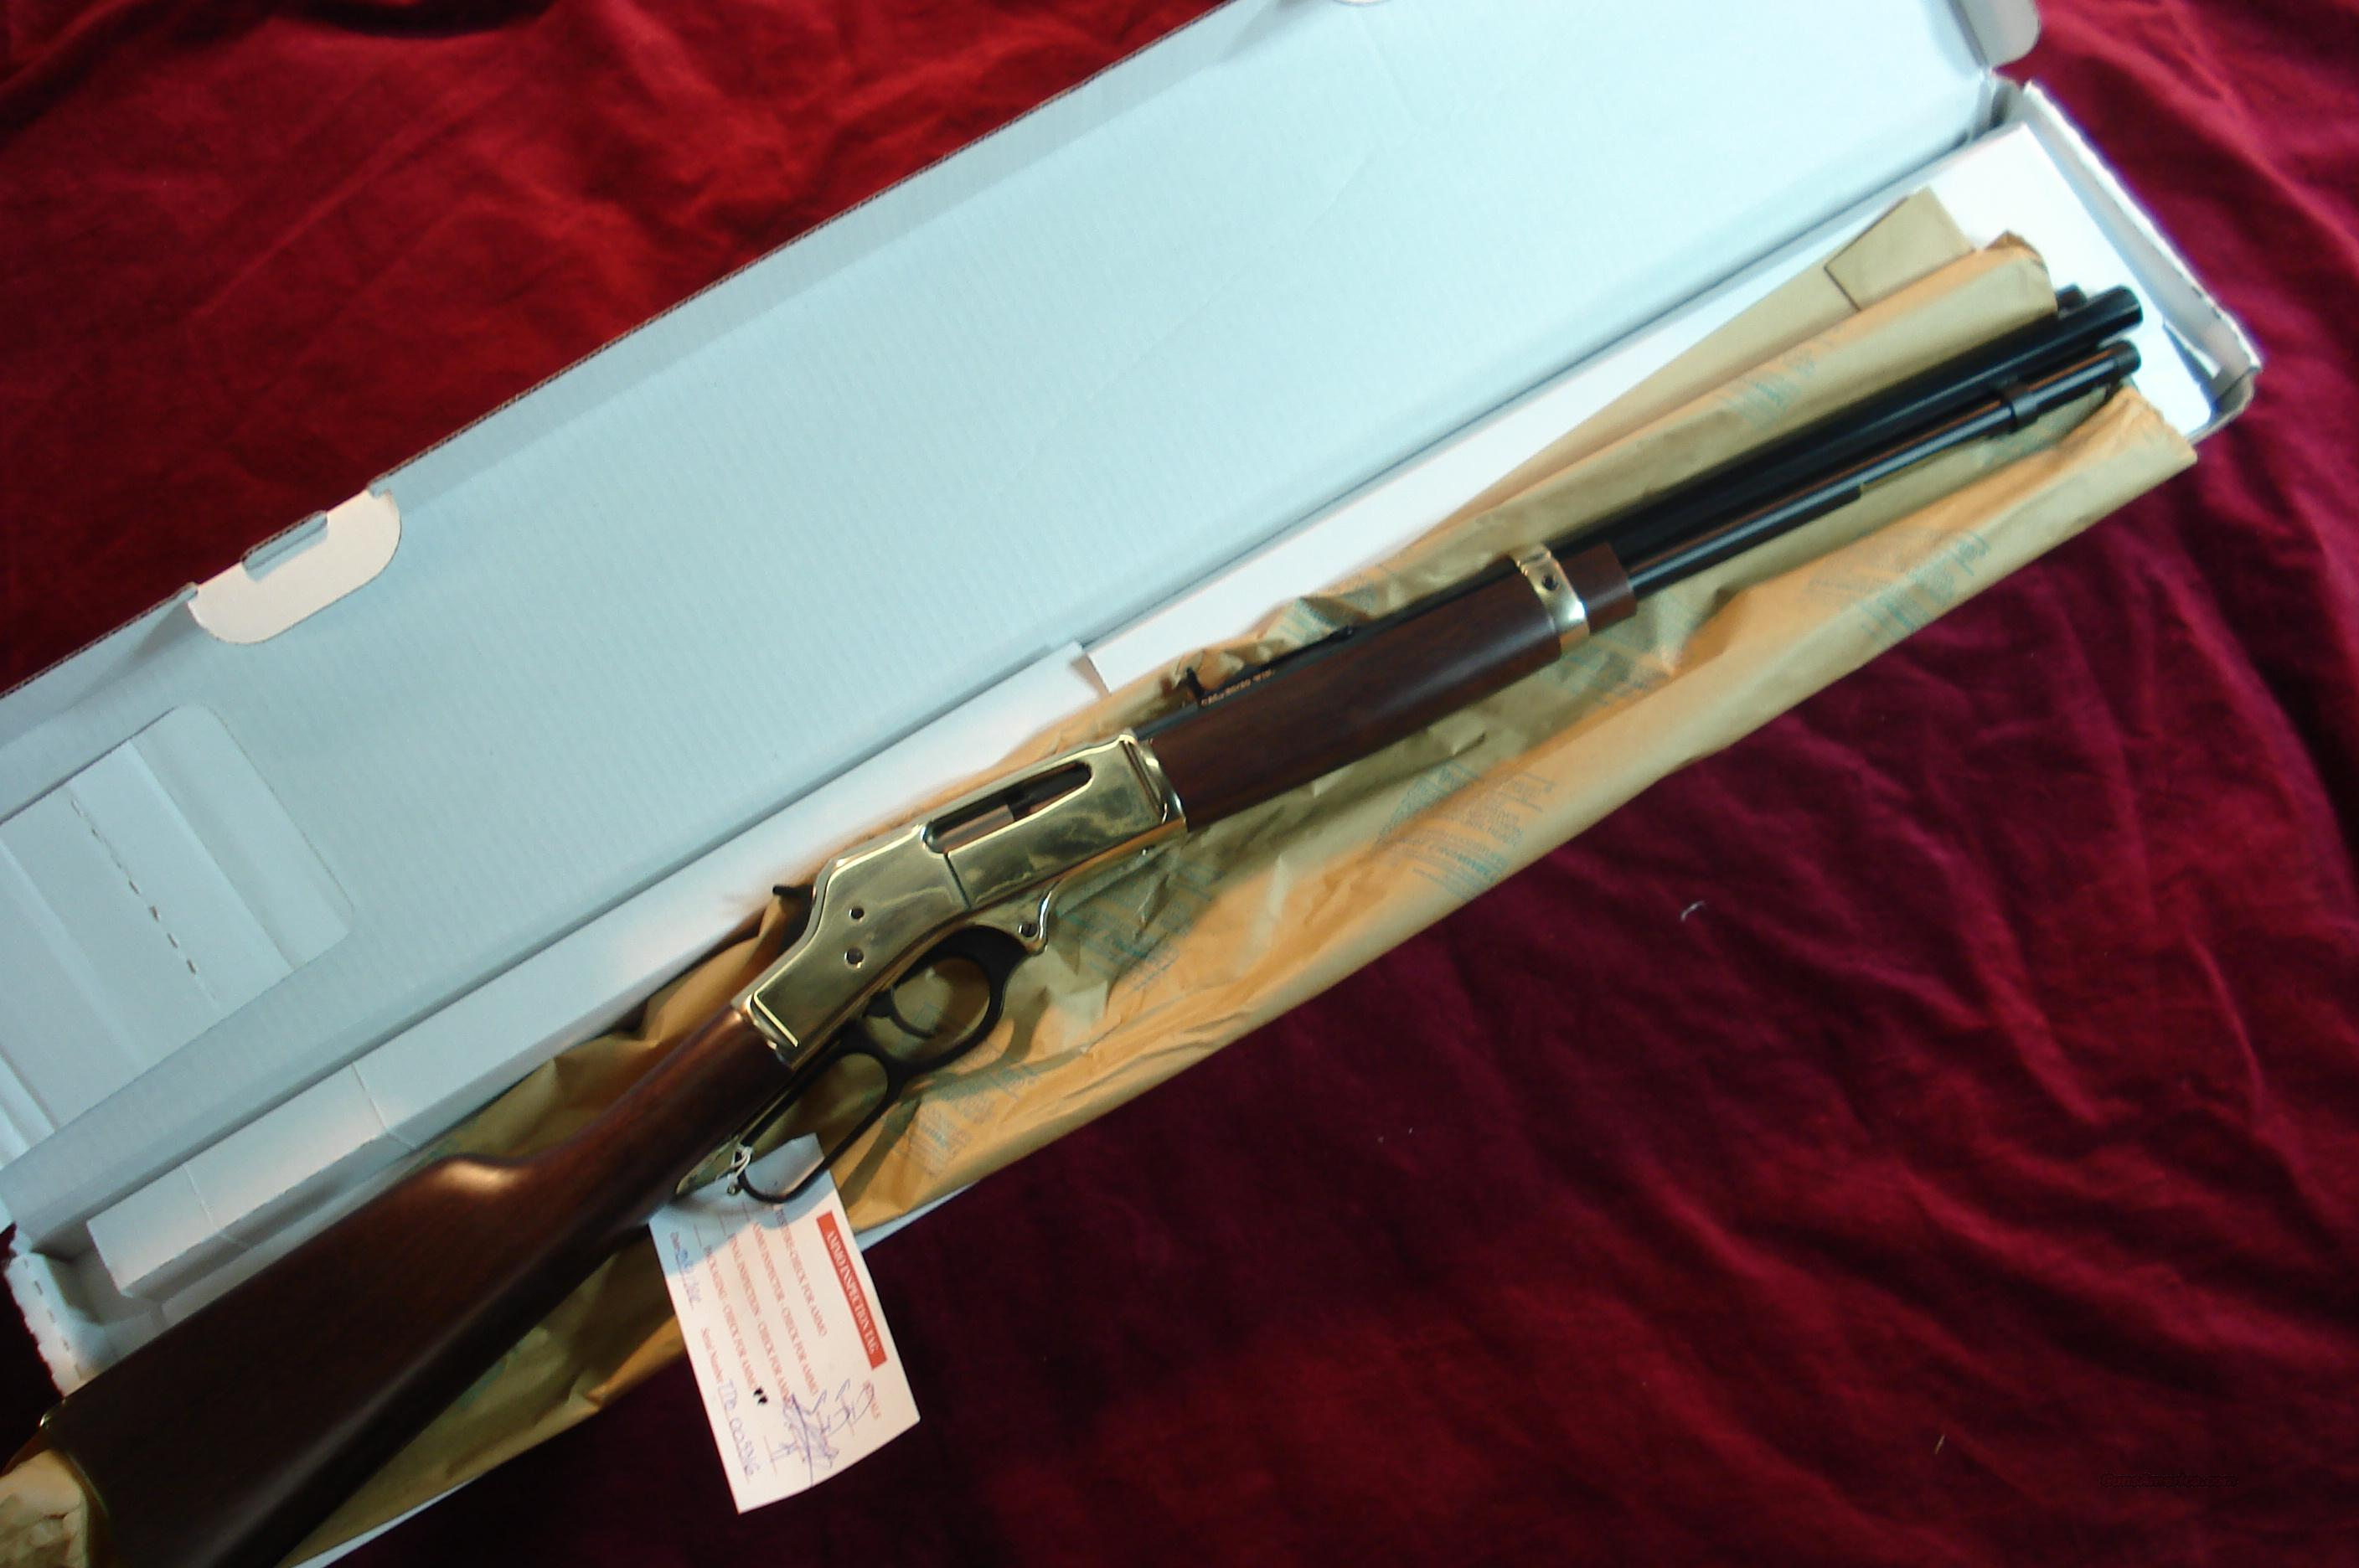 HENRY  BRASS RECEIVER 30-30 CAL.  OCTAGON BARREL LEVER ACTION RIFLE  NEW  (H009B)  Guns > Rifles > Henry Rifle Company